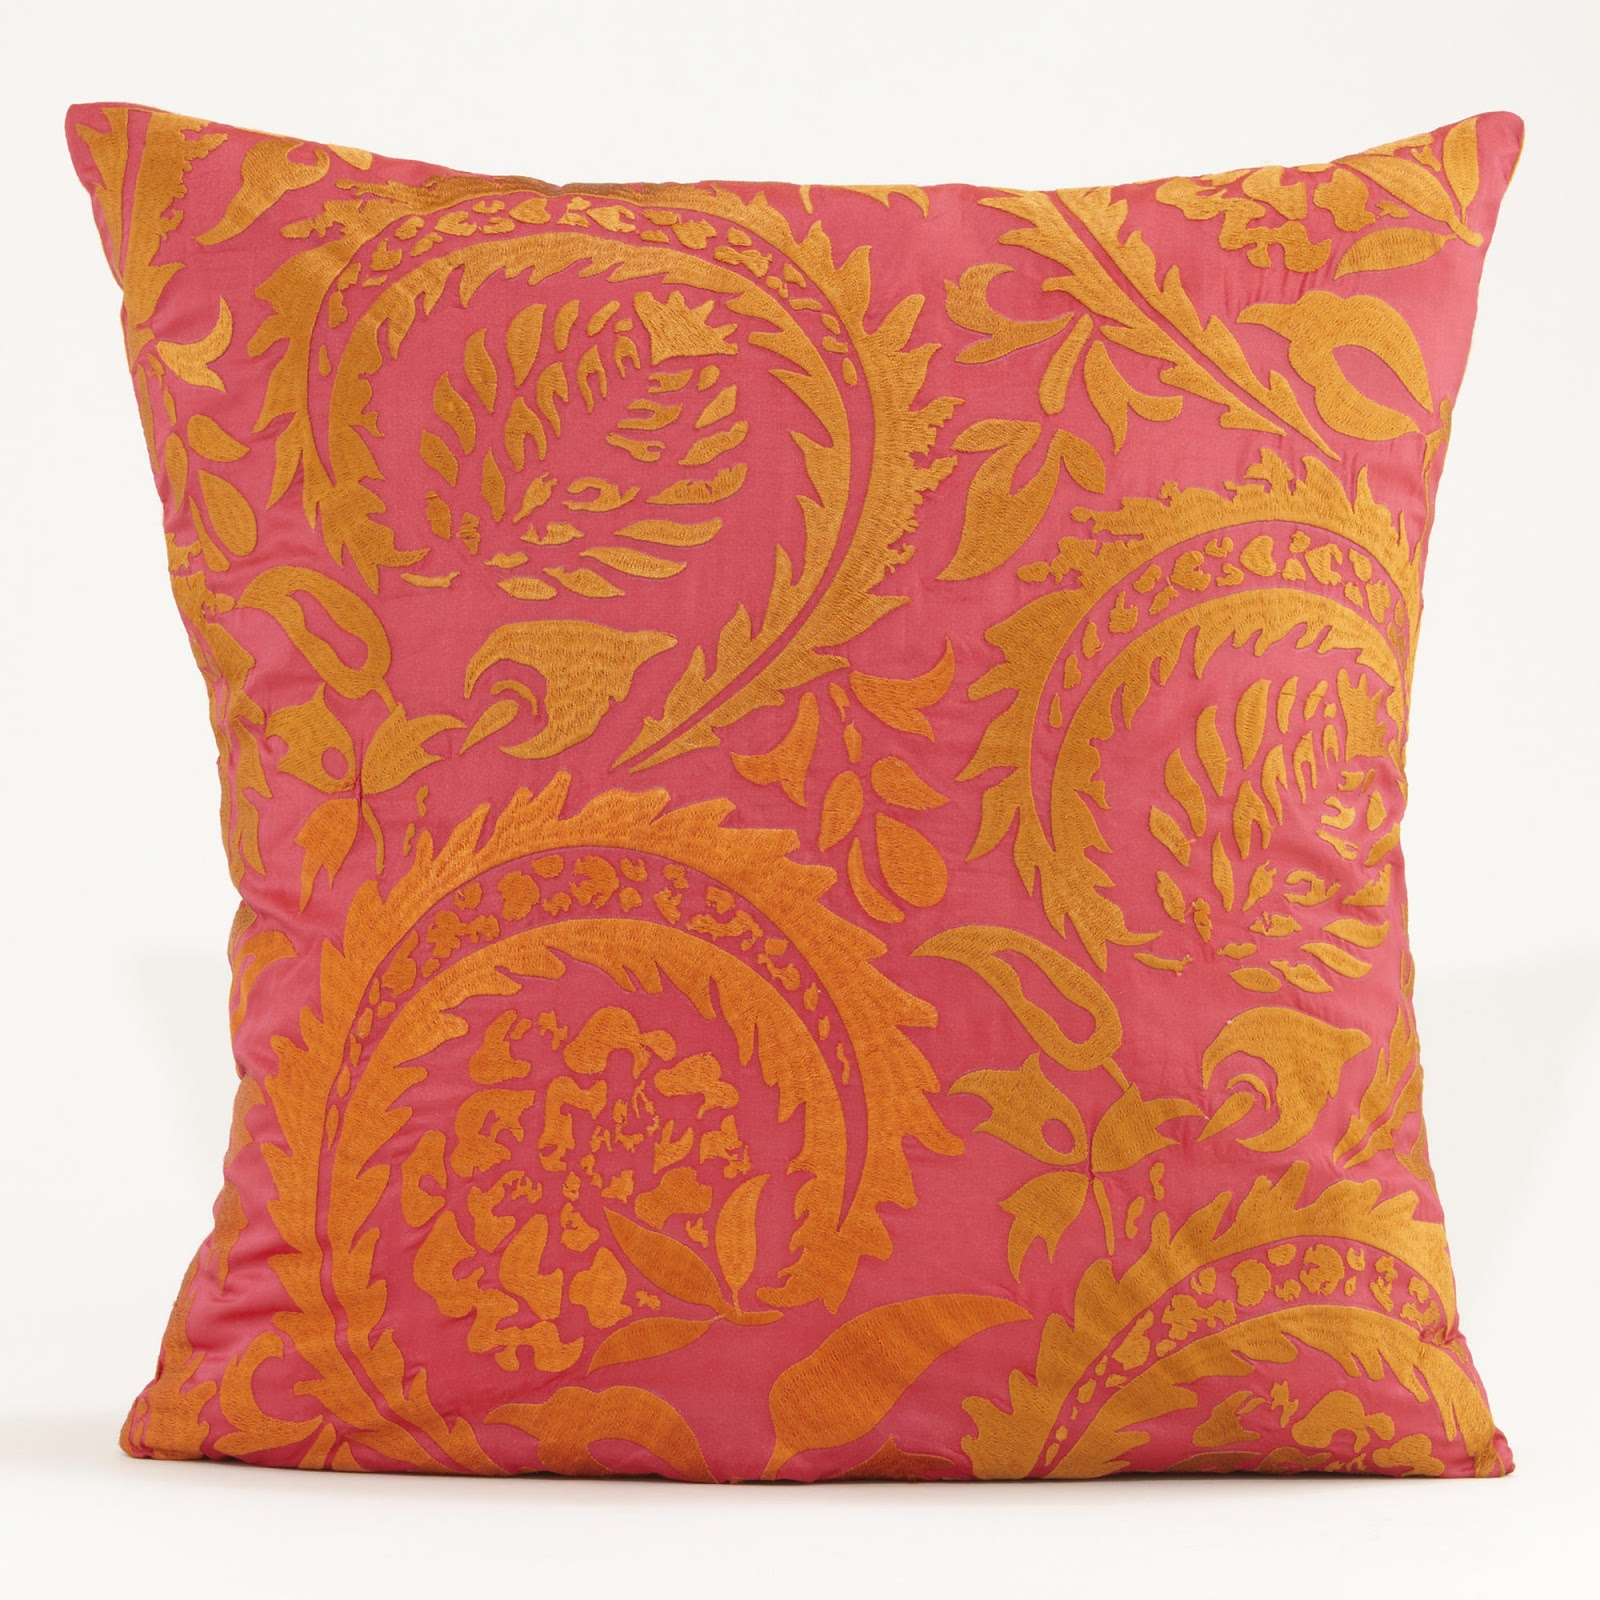 Throw Pillows Black Friday : 2012 Black Friday Home D?cor Deals Driven by Decor